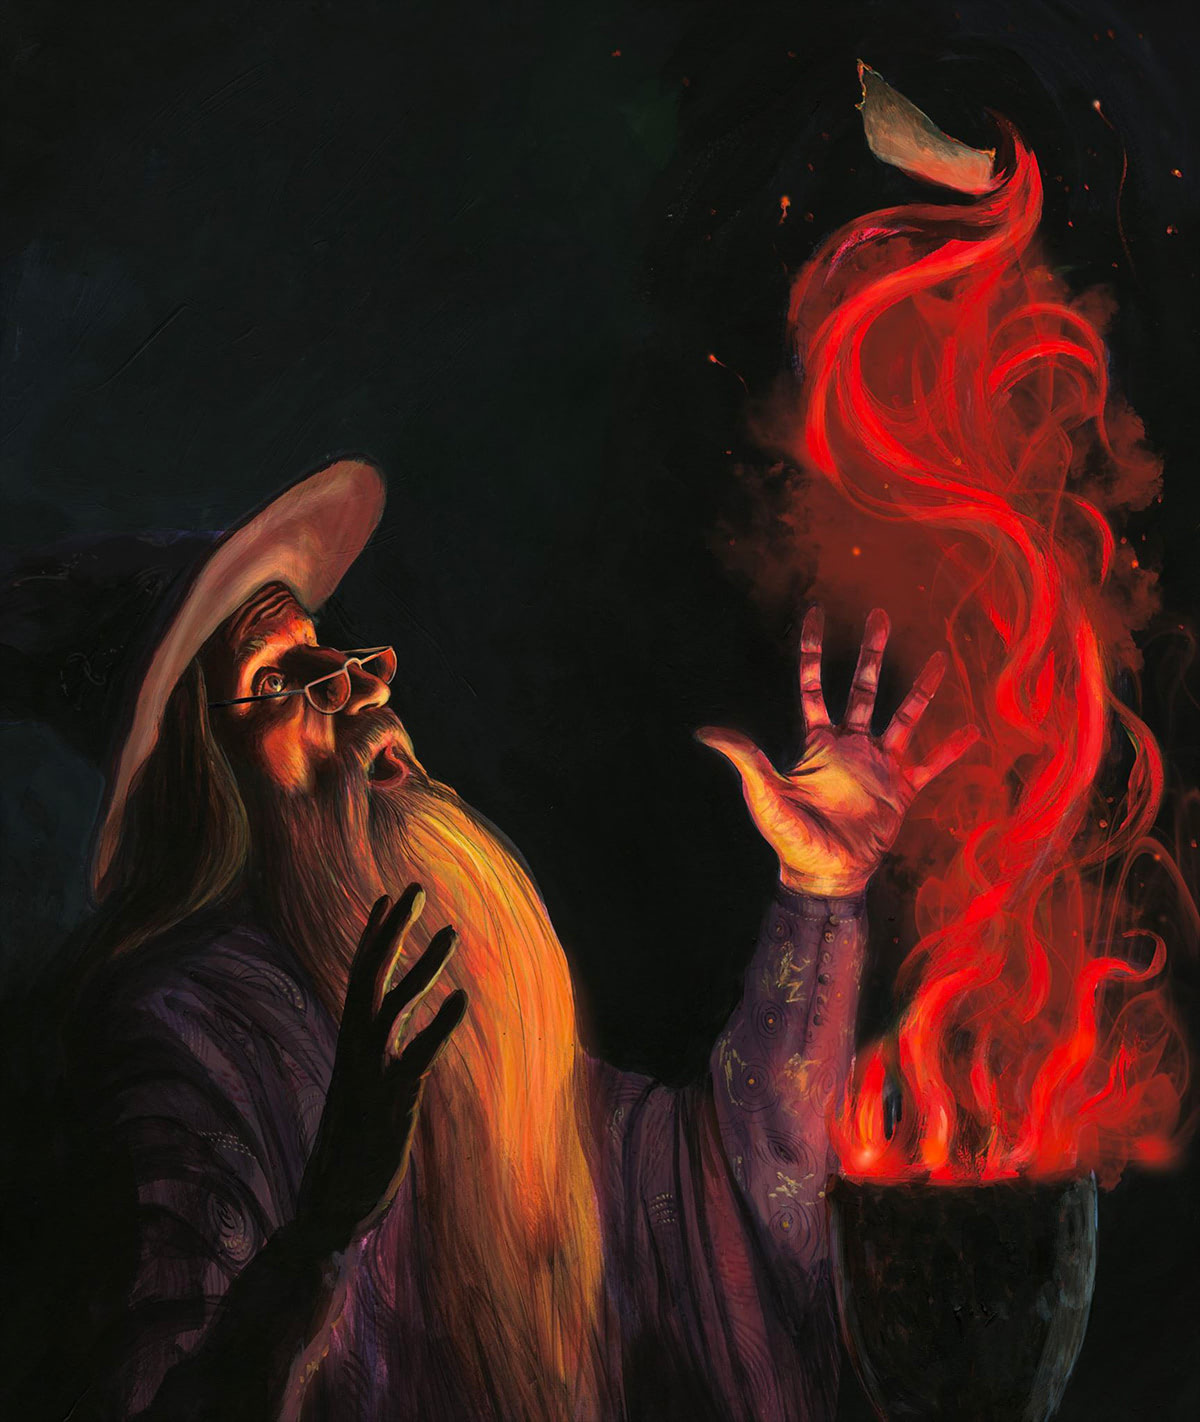 Dumbledore and the Goblet of Fire